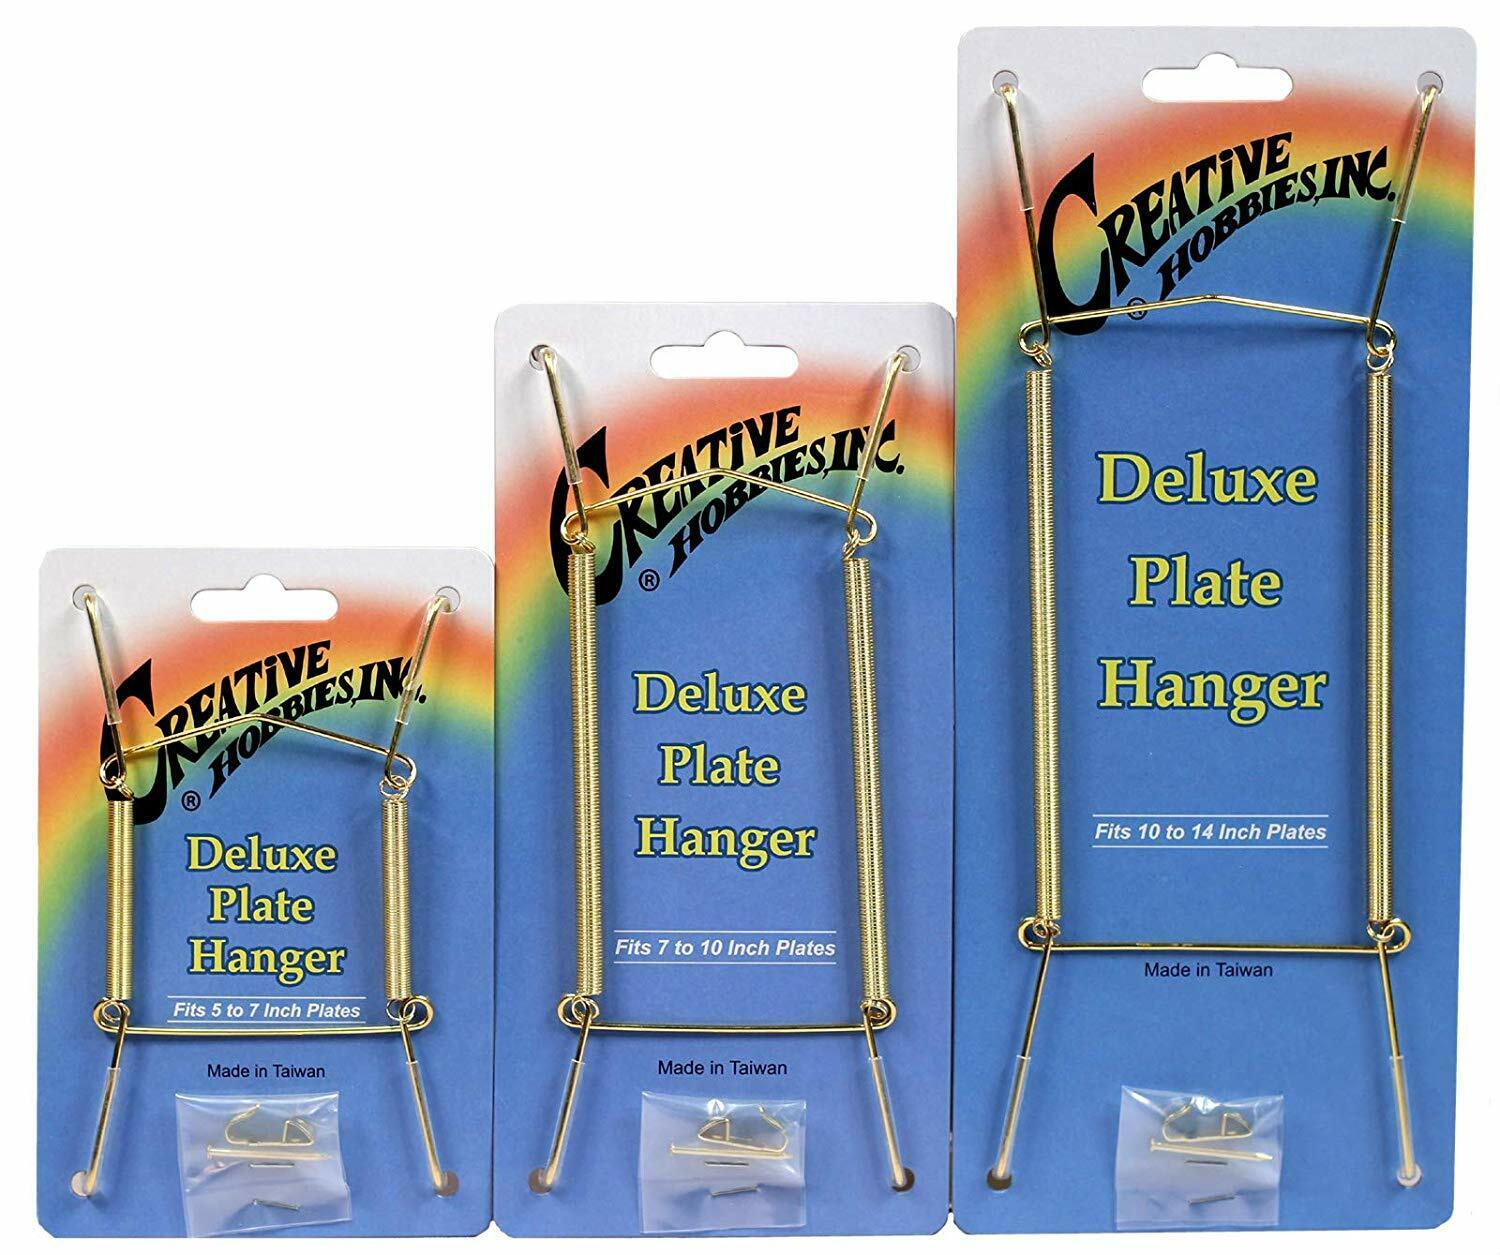 Gold Plate Display Hangers, Spring Type,Hold 5 to 14 Inch Plates -Pack of 6 Crafts